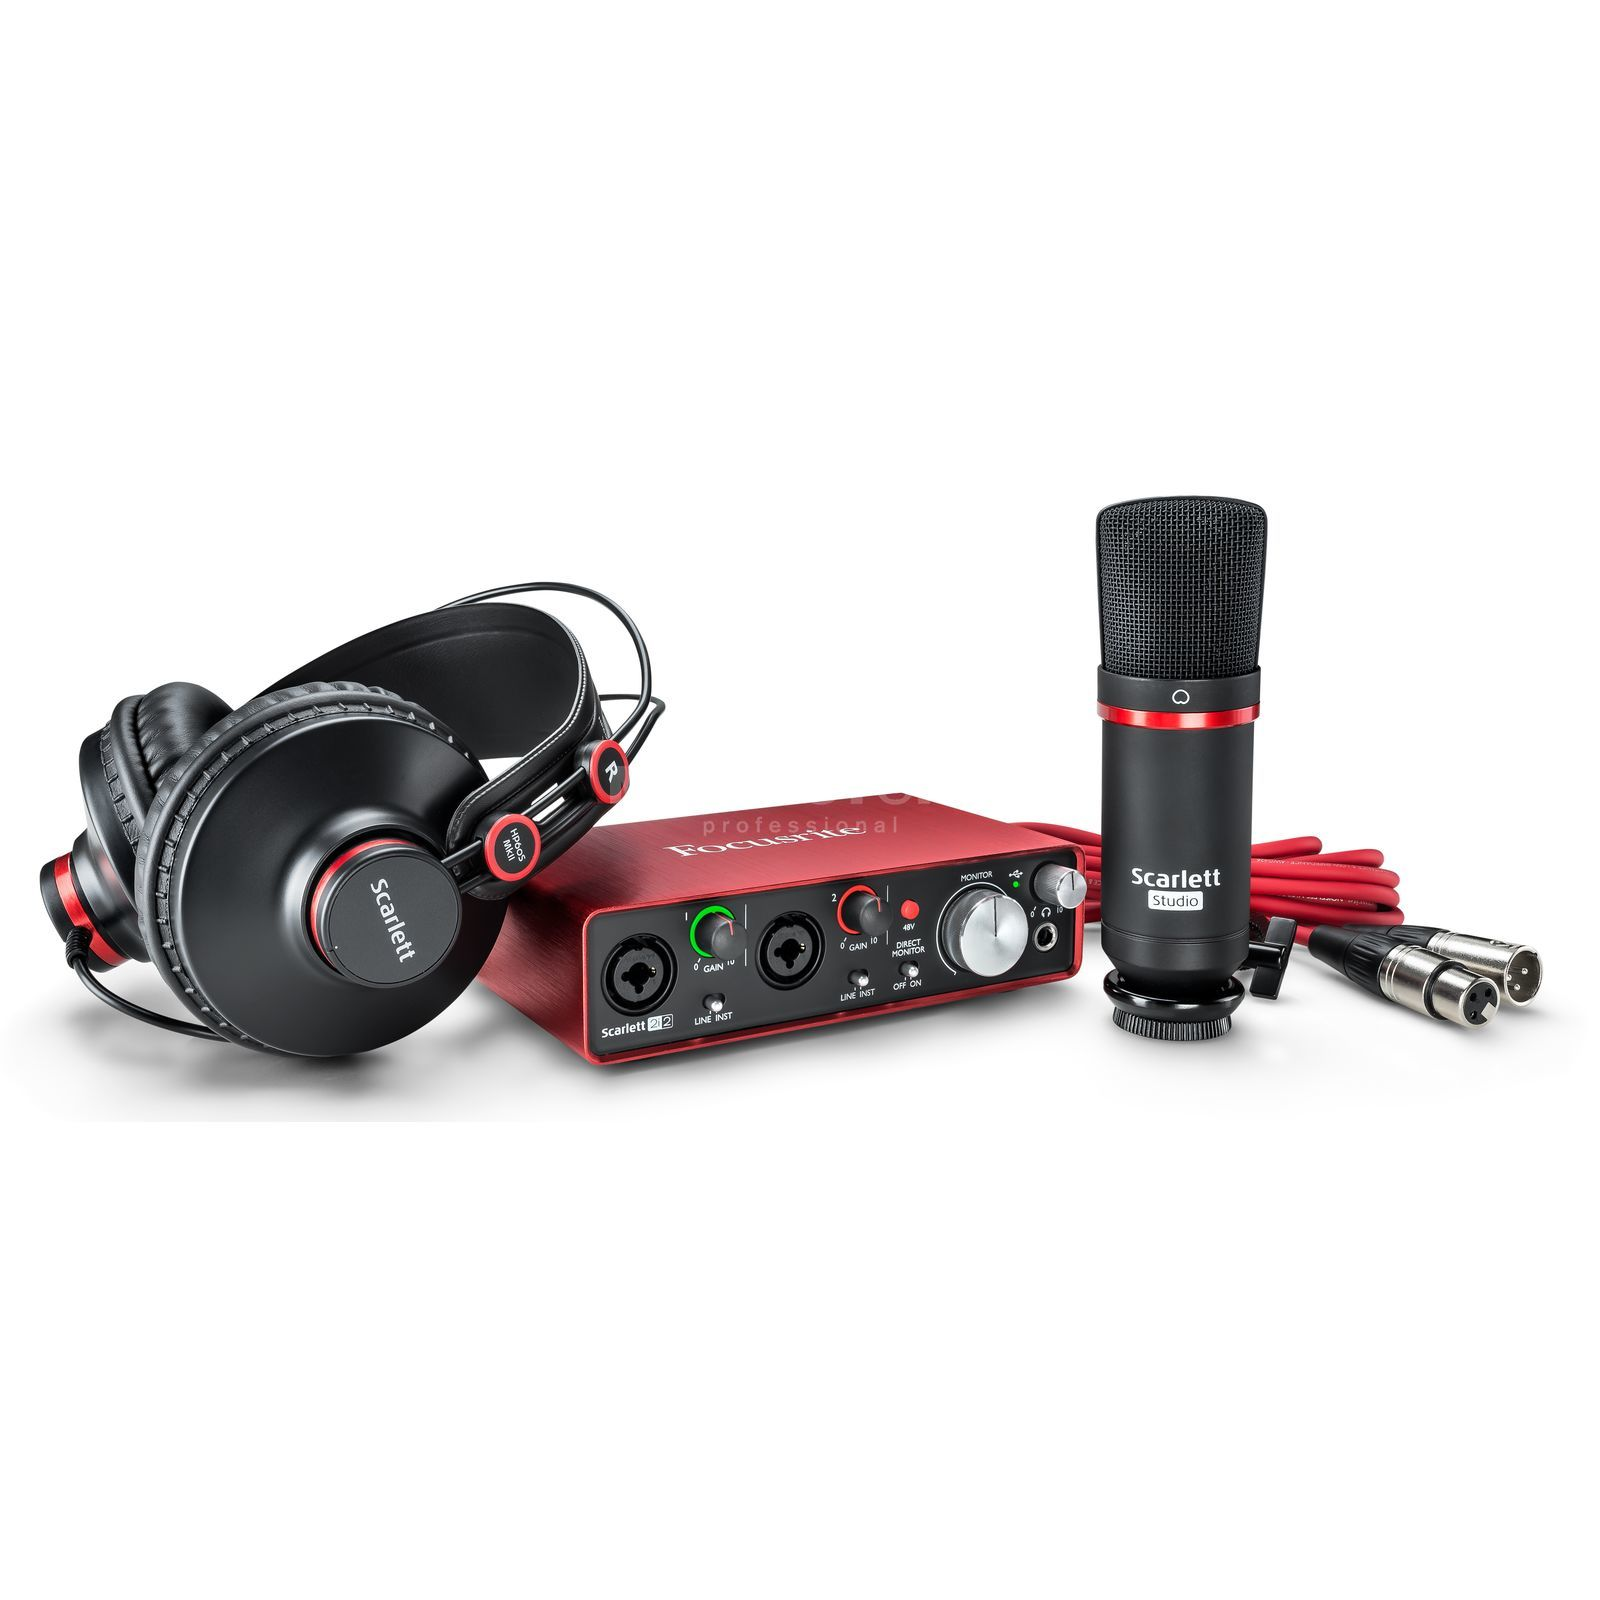 Focusrite Scarlett 2i2 Studio II 2nd Gen Product Image